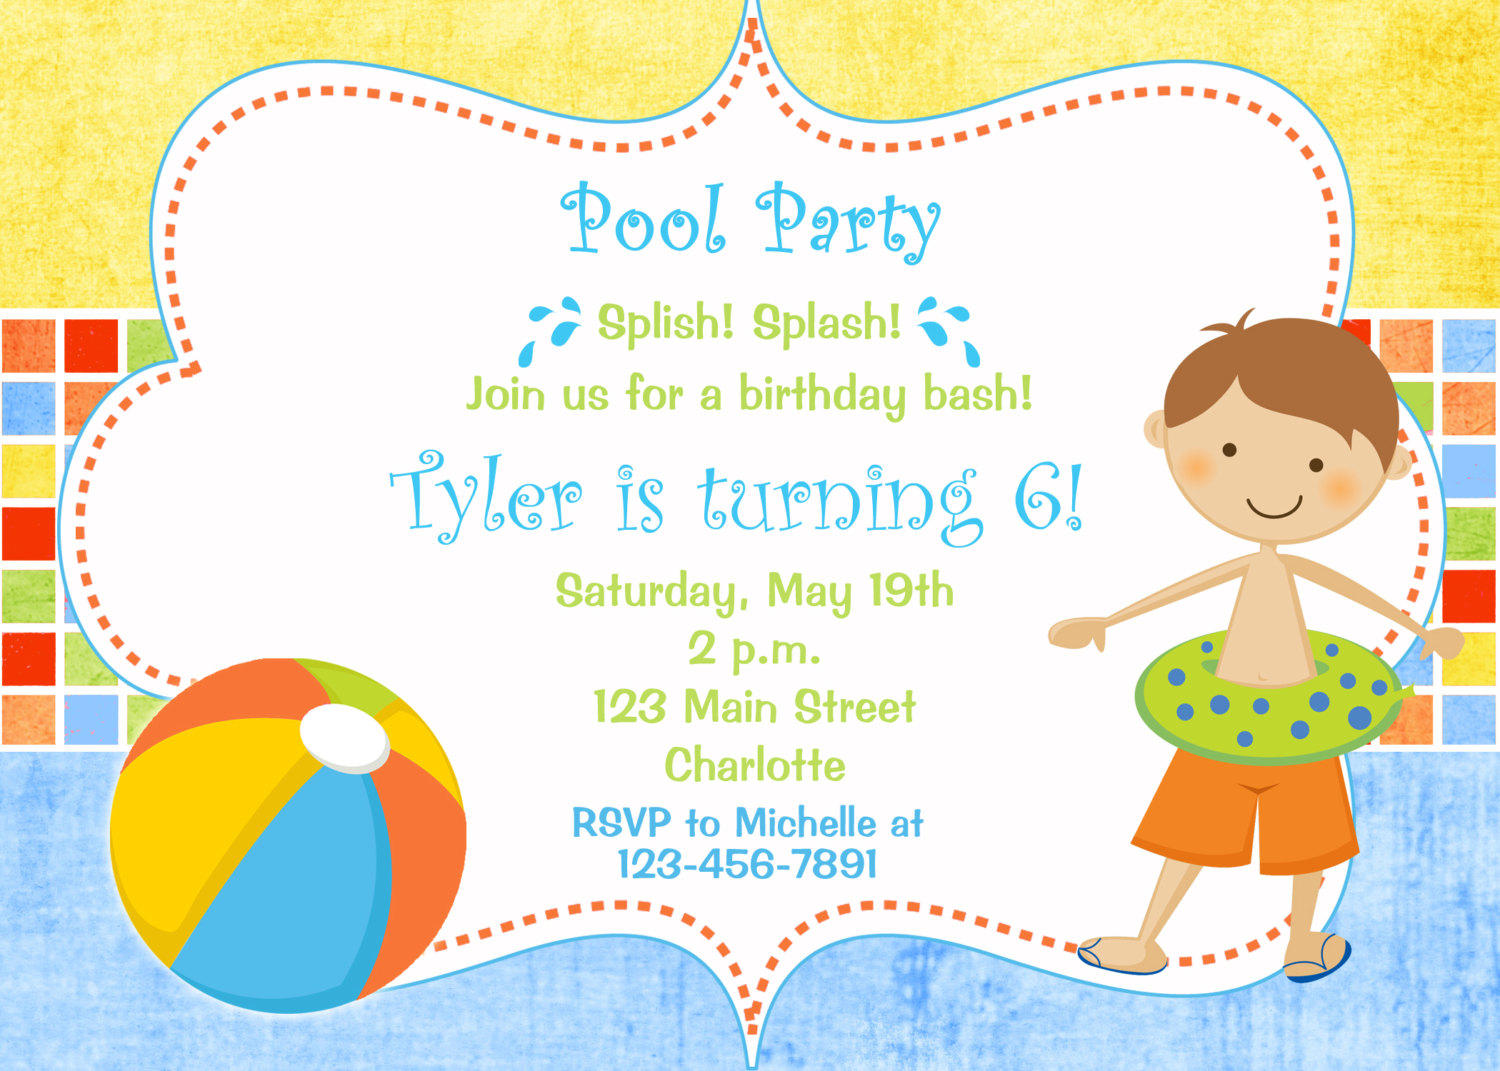 Party Invitations Pool Party Kids Swimming Pool Clip Art #uDIUzW - Clipart Suggest